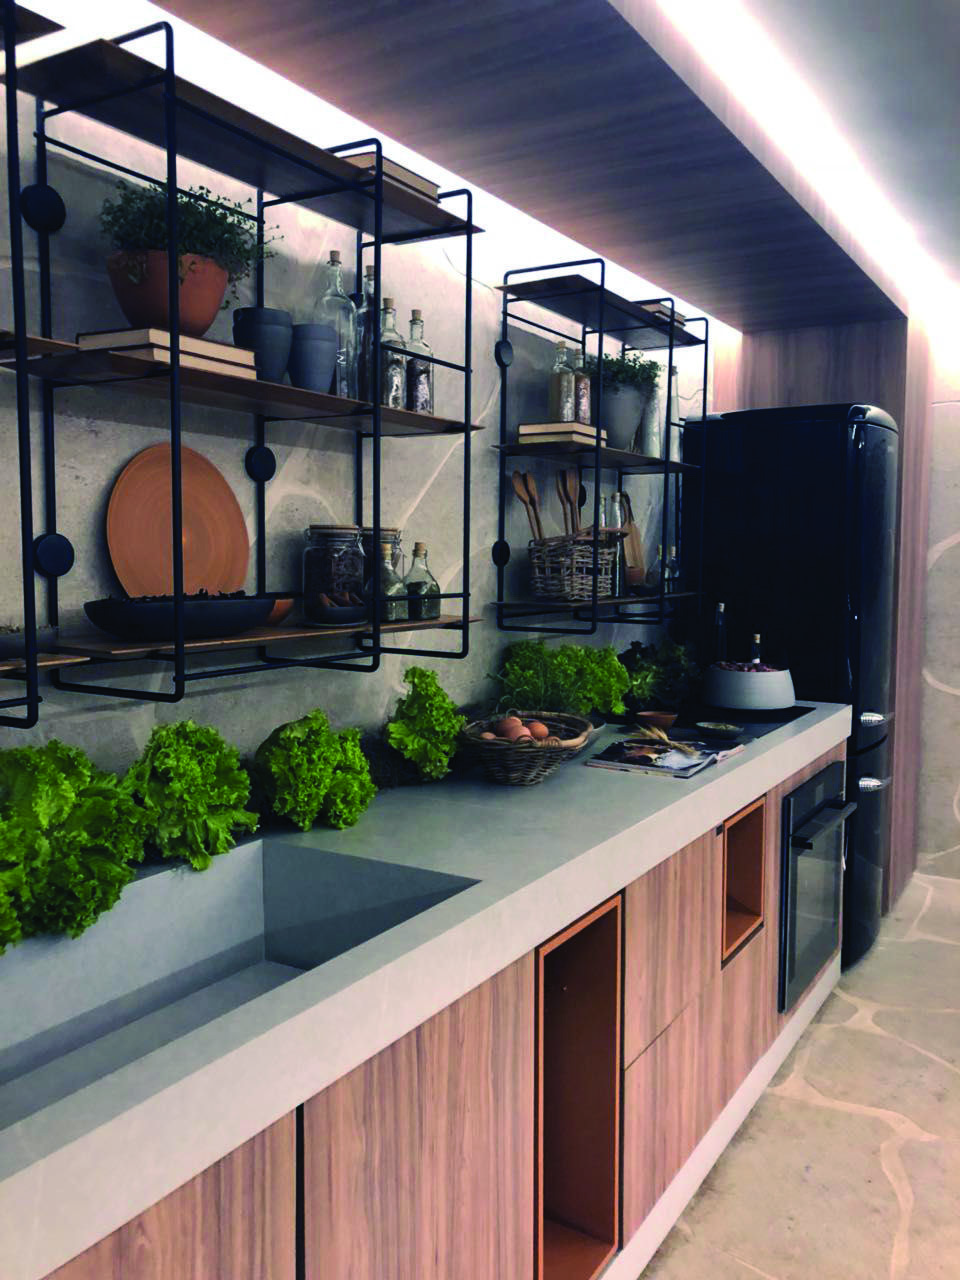 How to Decorate a vintage metal kitchen cabinets uk that ...